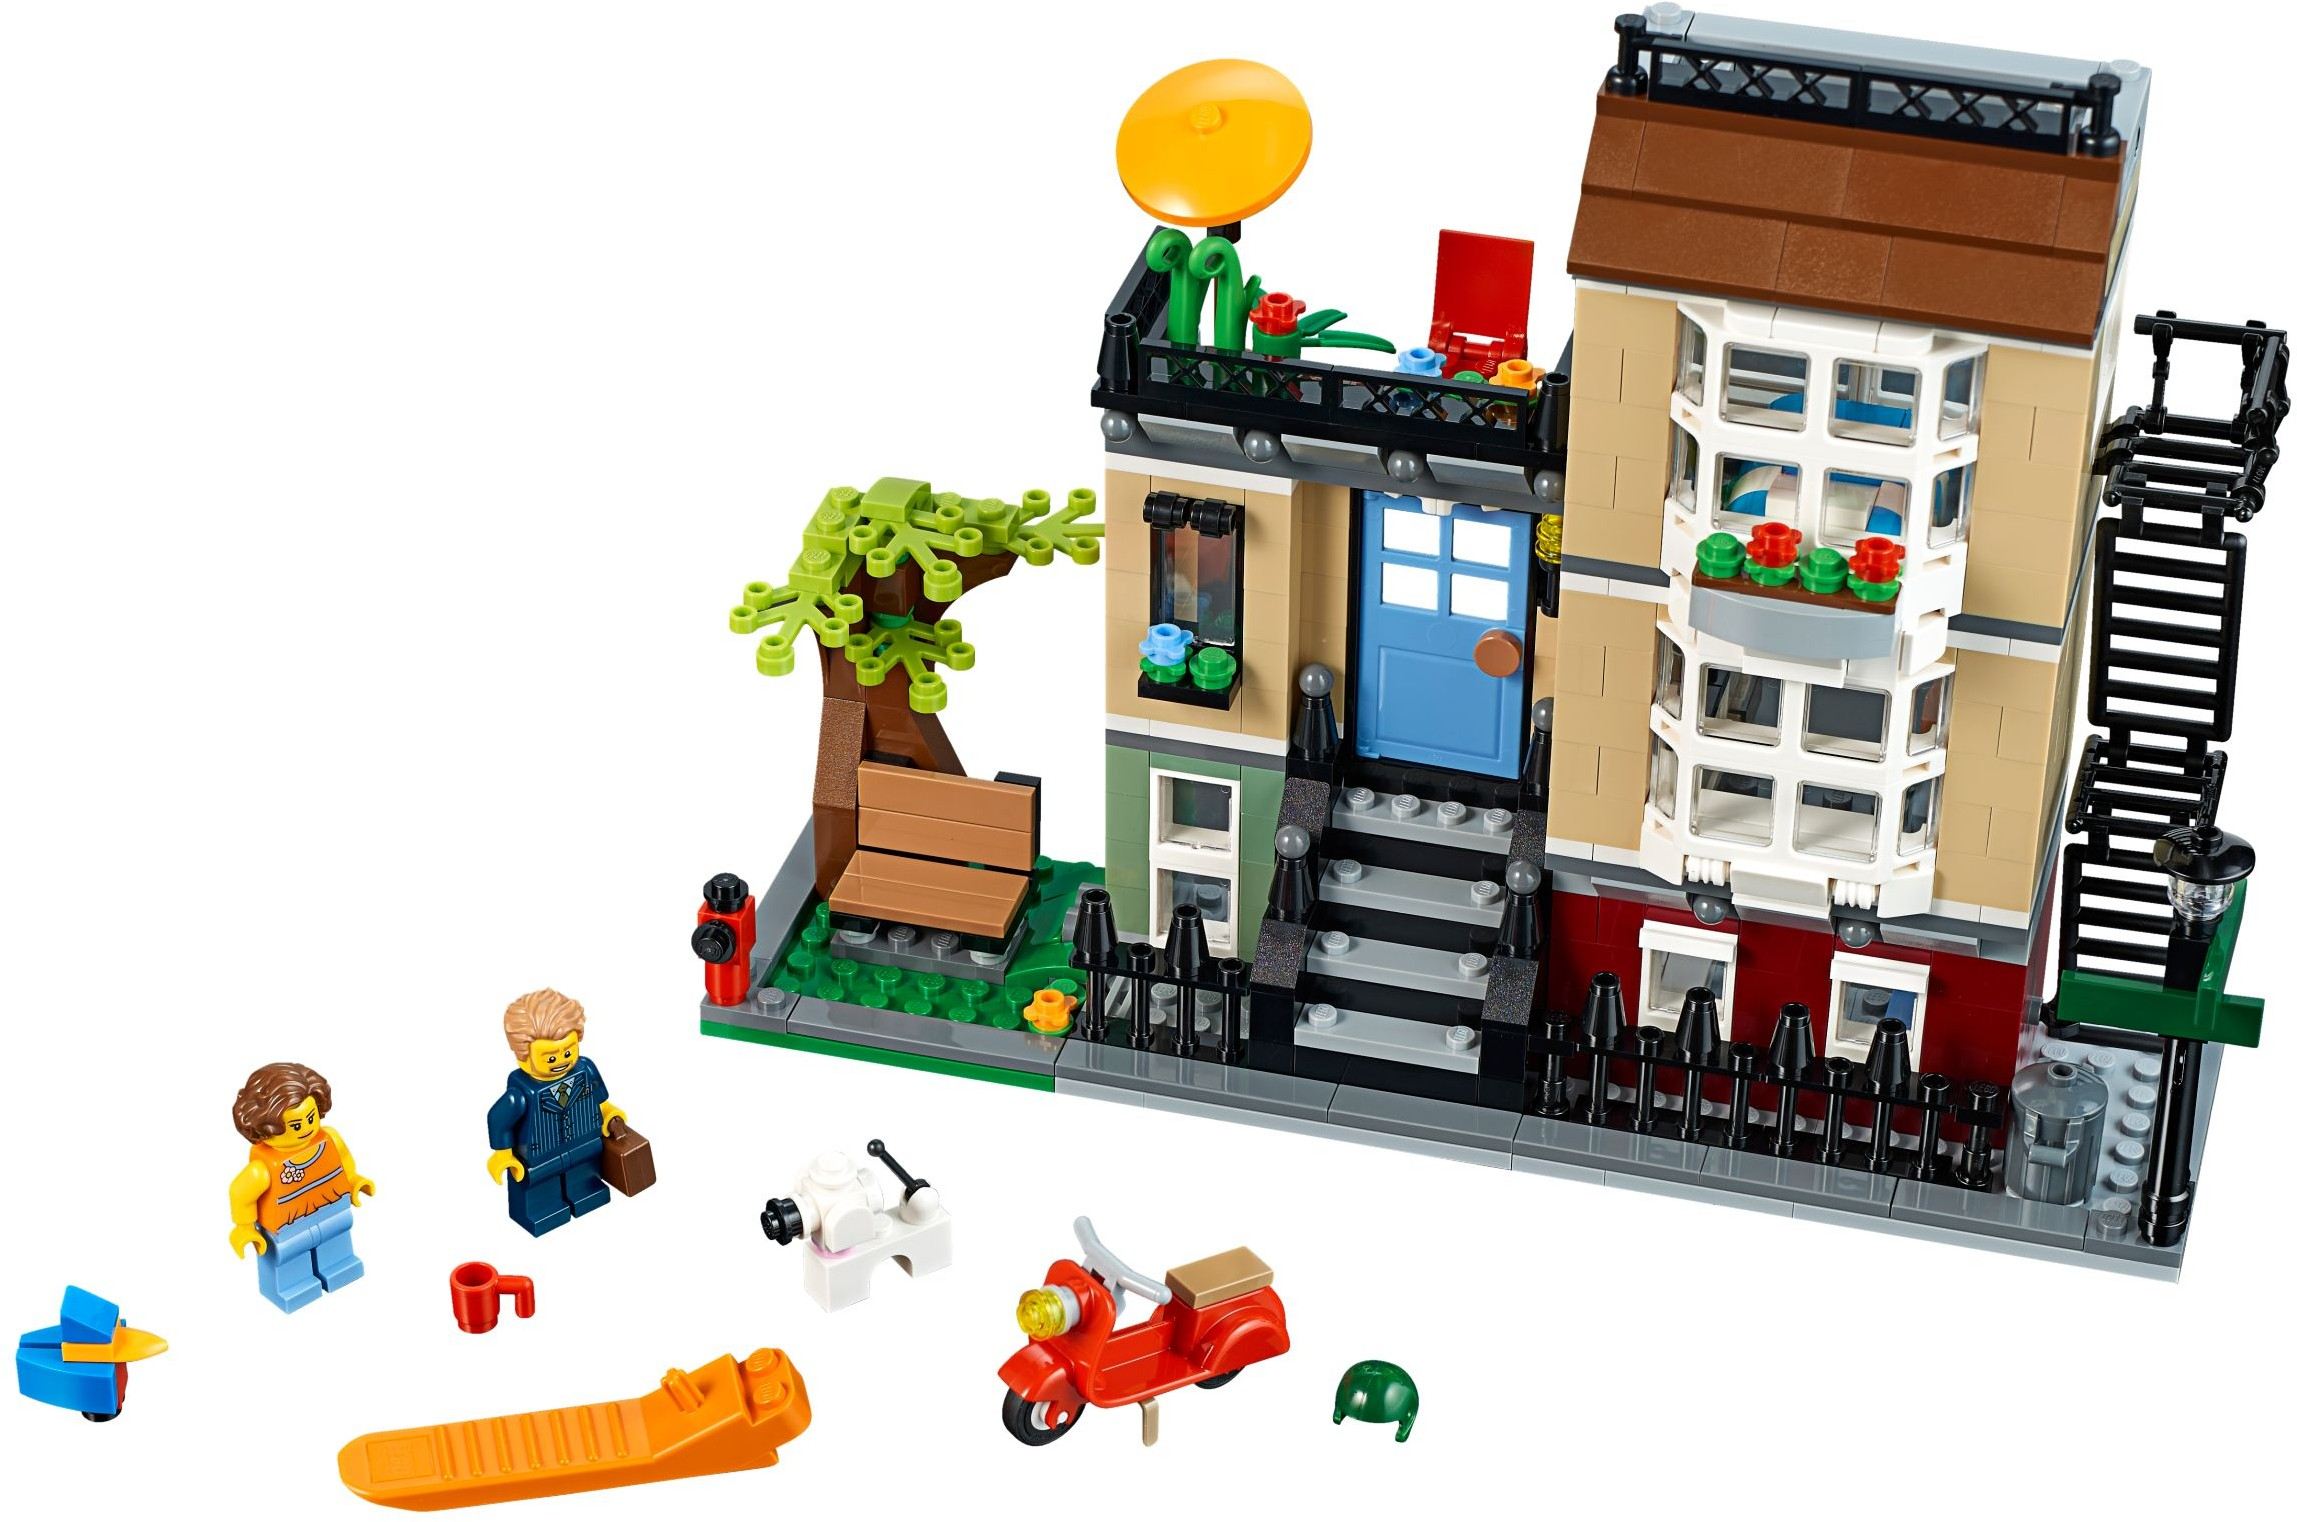 Lego creator sets 31065 park street townhouse new for Modele maison lego classic